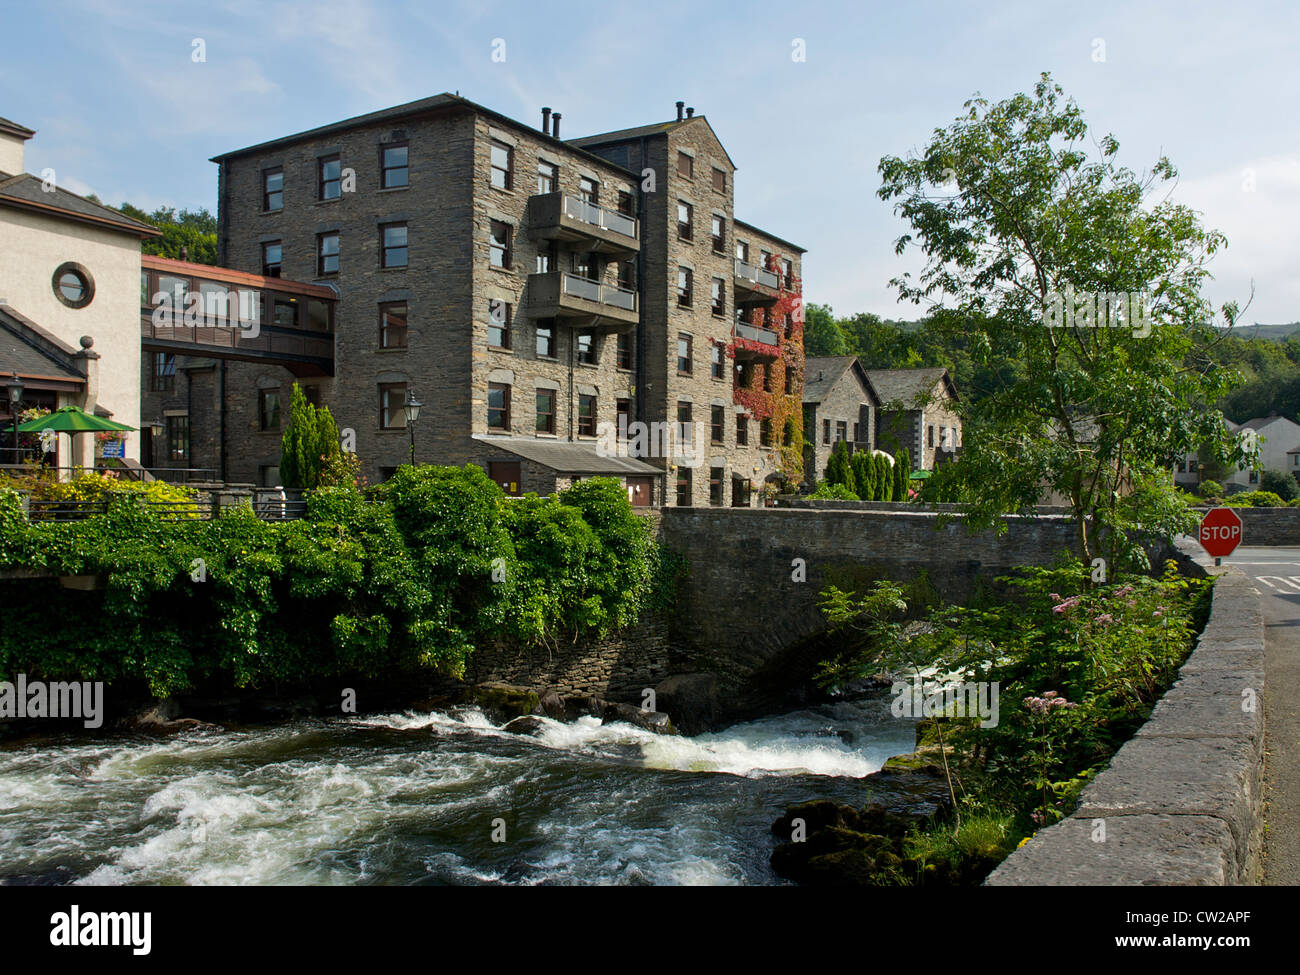 The Whitewater Hotel and the River Leven at Backbarrow, South Lakeland, Cumbria, England UK - Stock Image